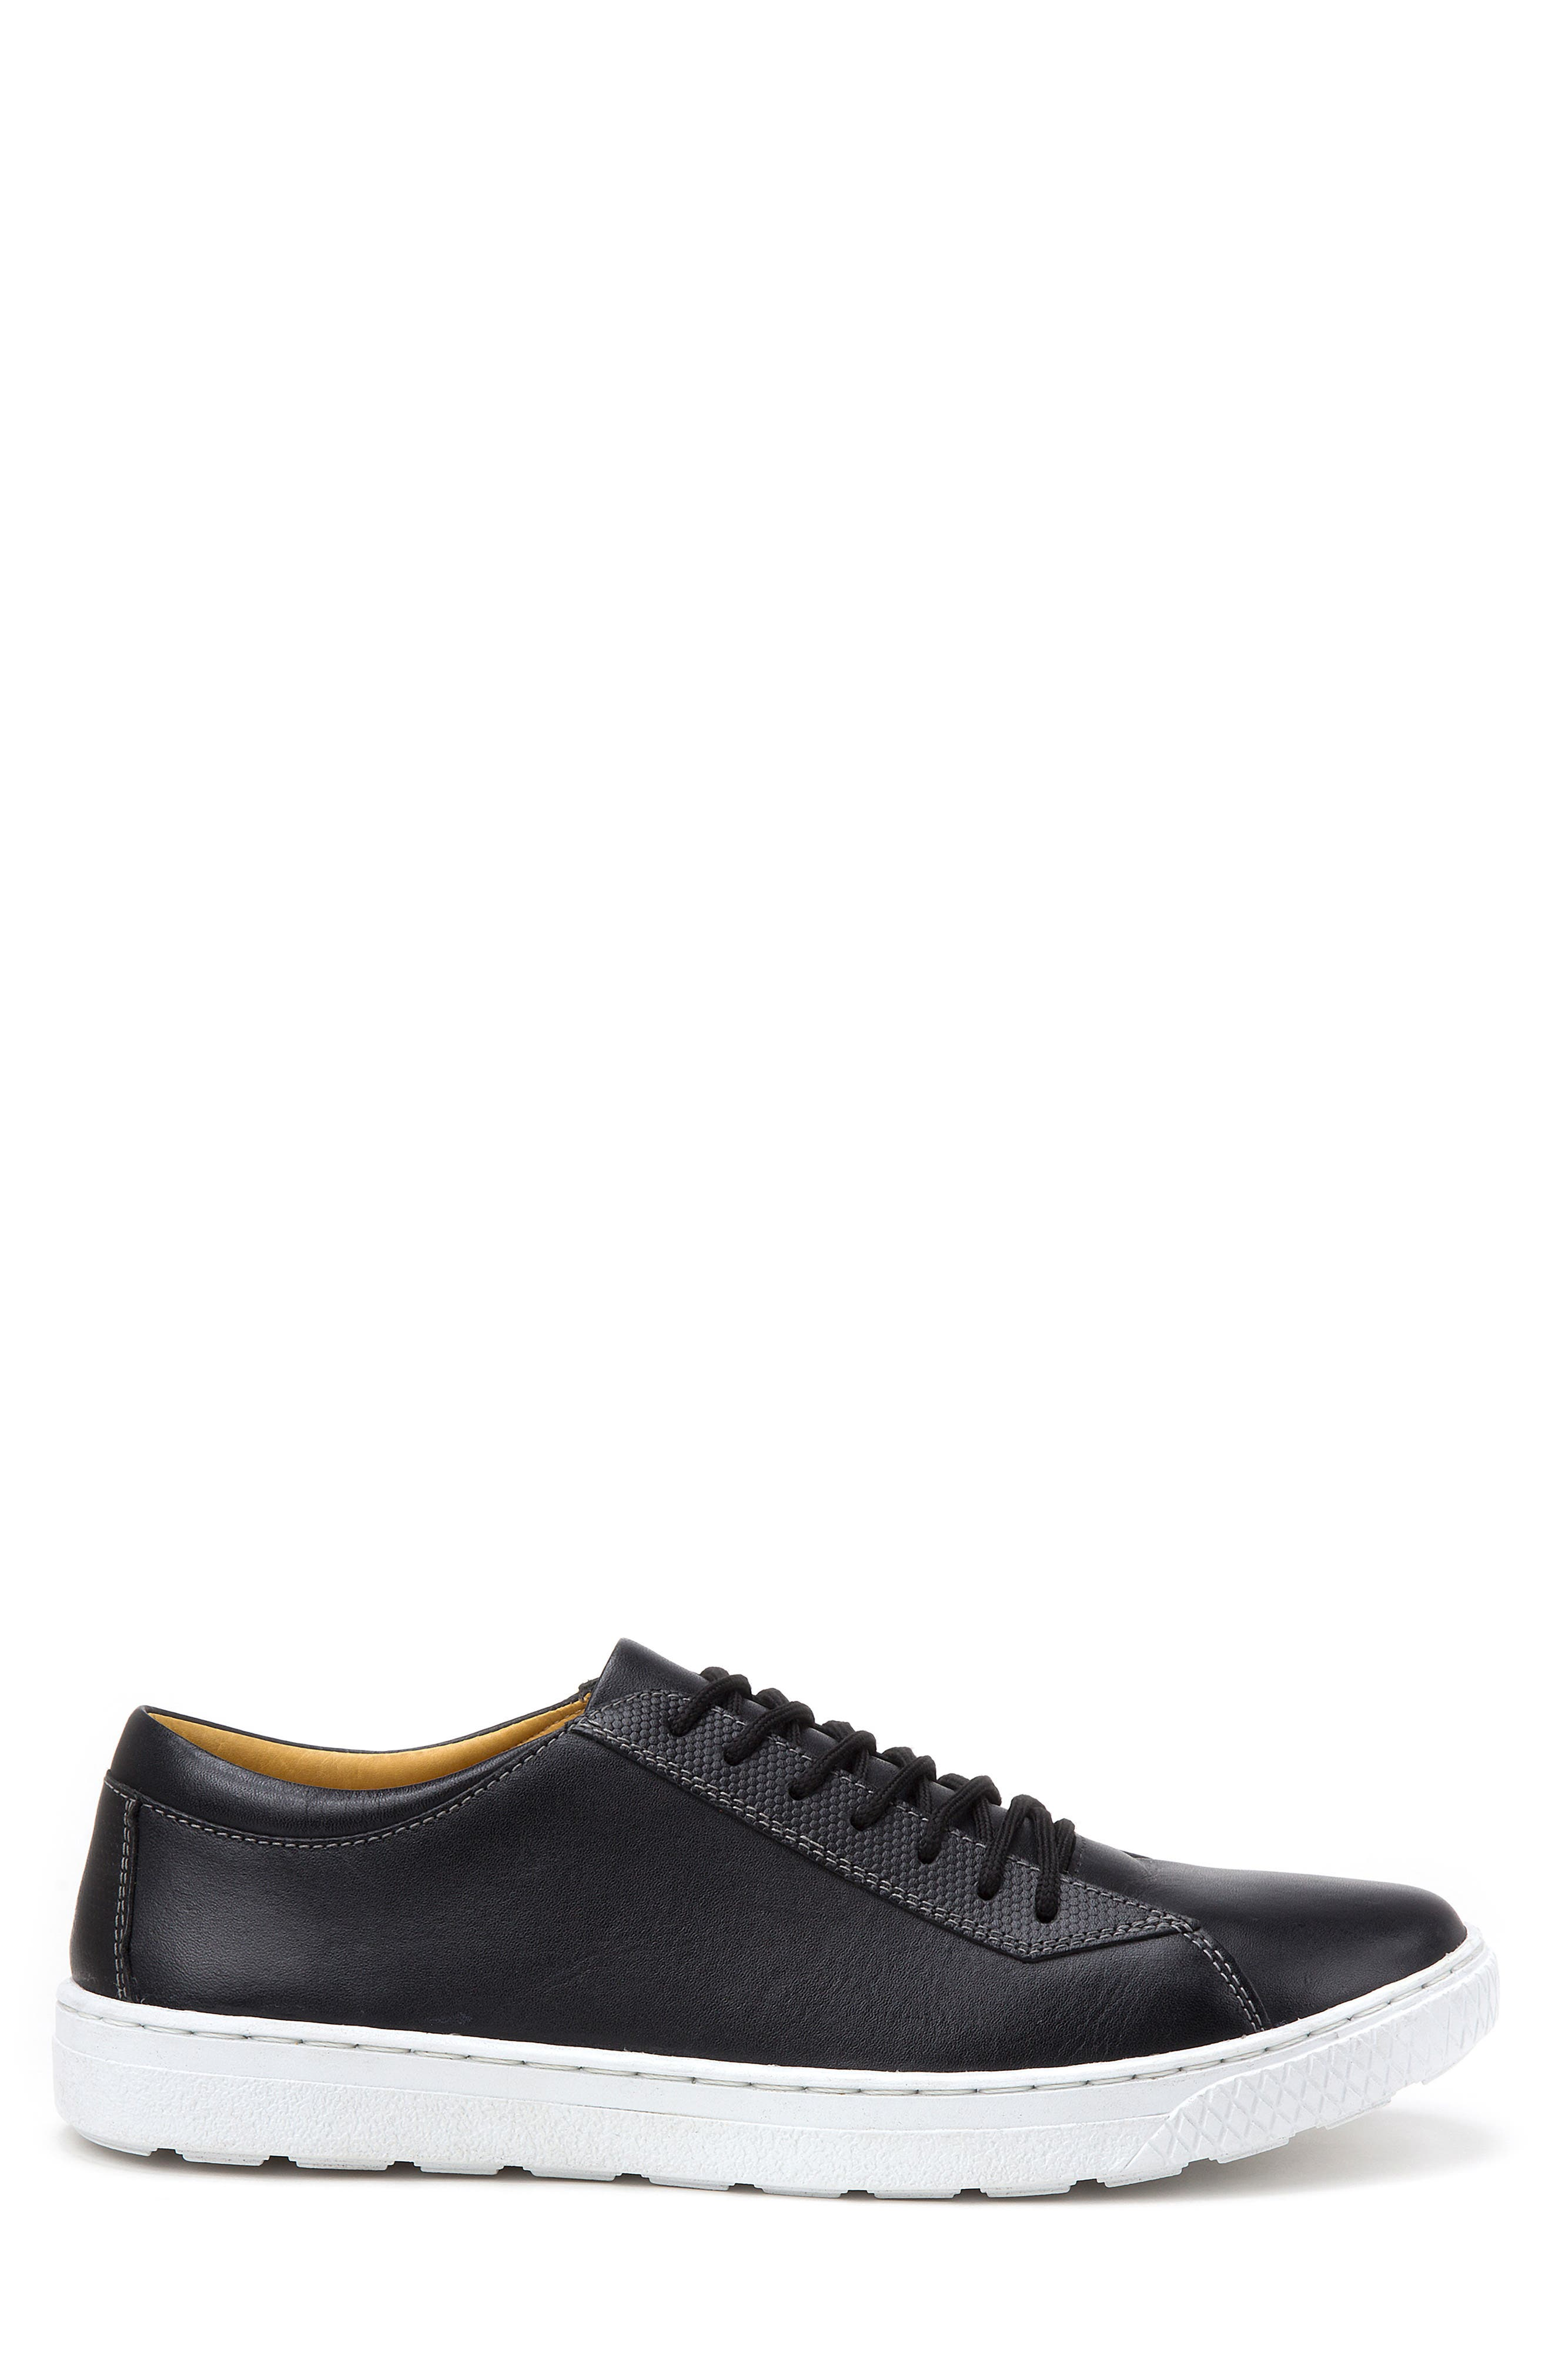 Minh Low Top Sneaker,                             Alternate thumbnail 3, color,                             BLACK LEATHER